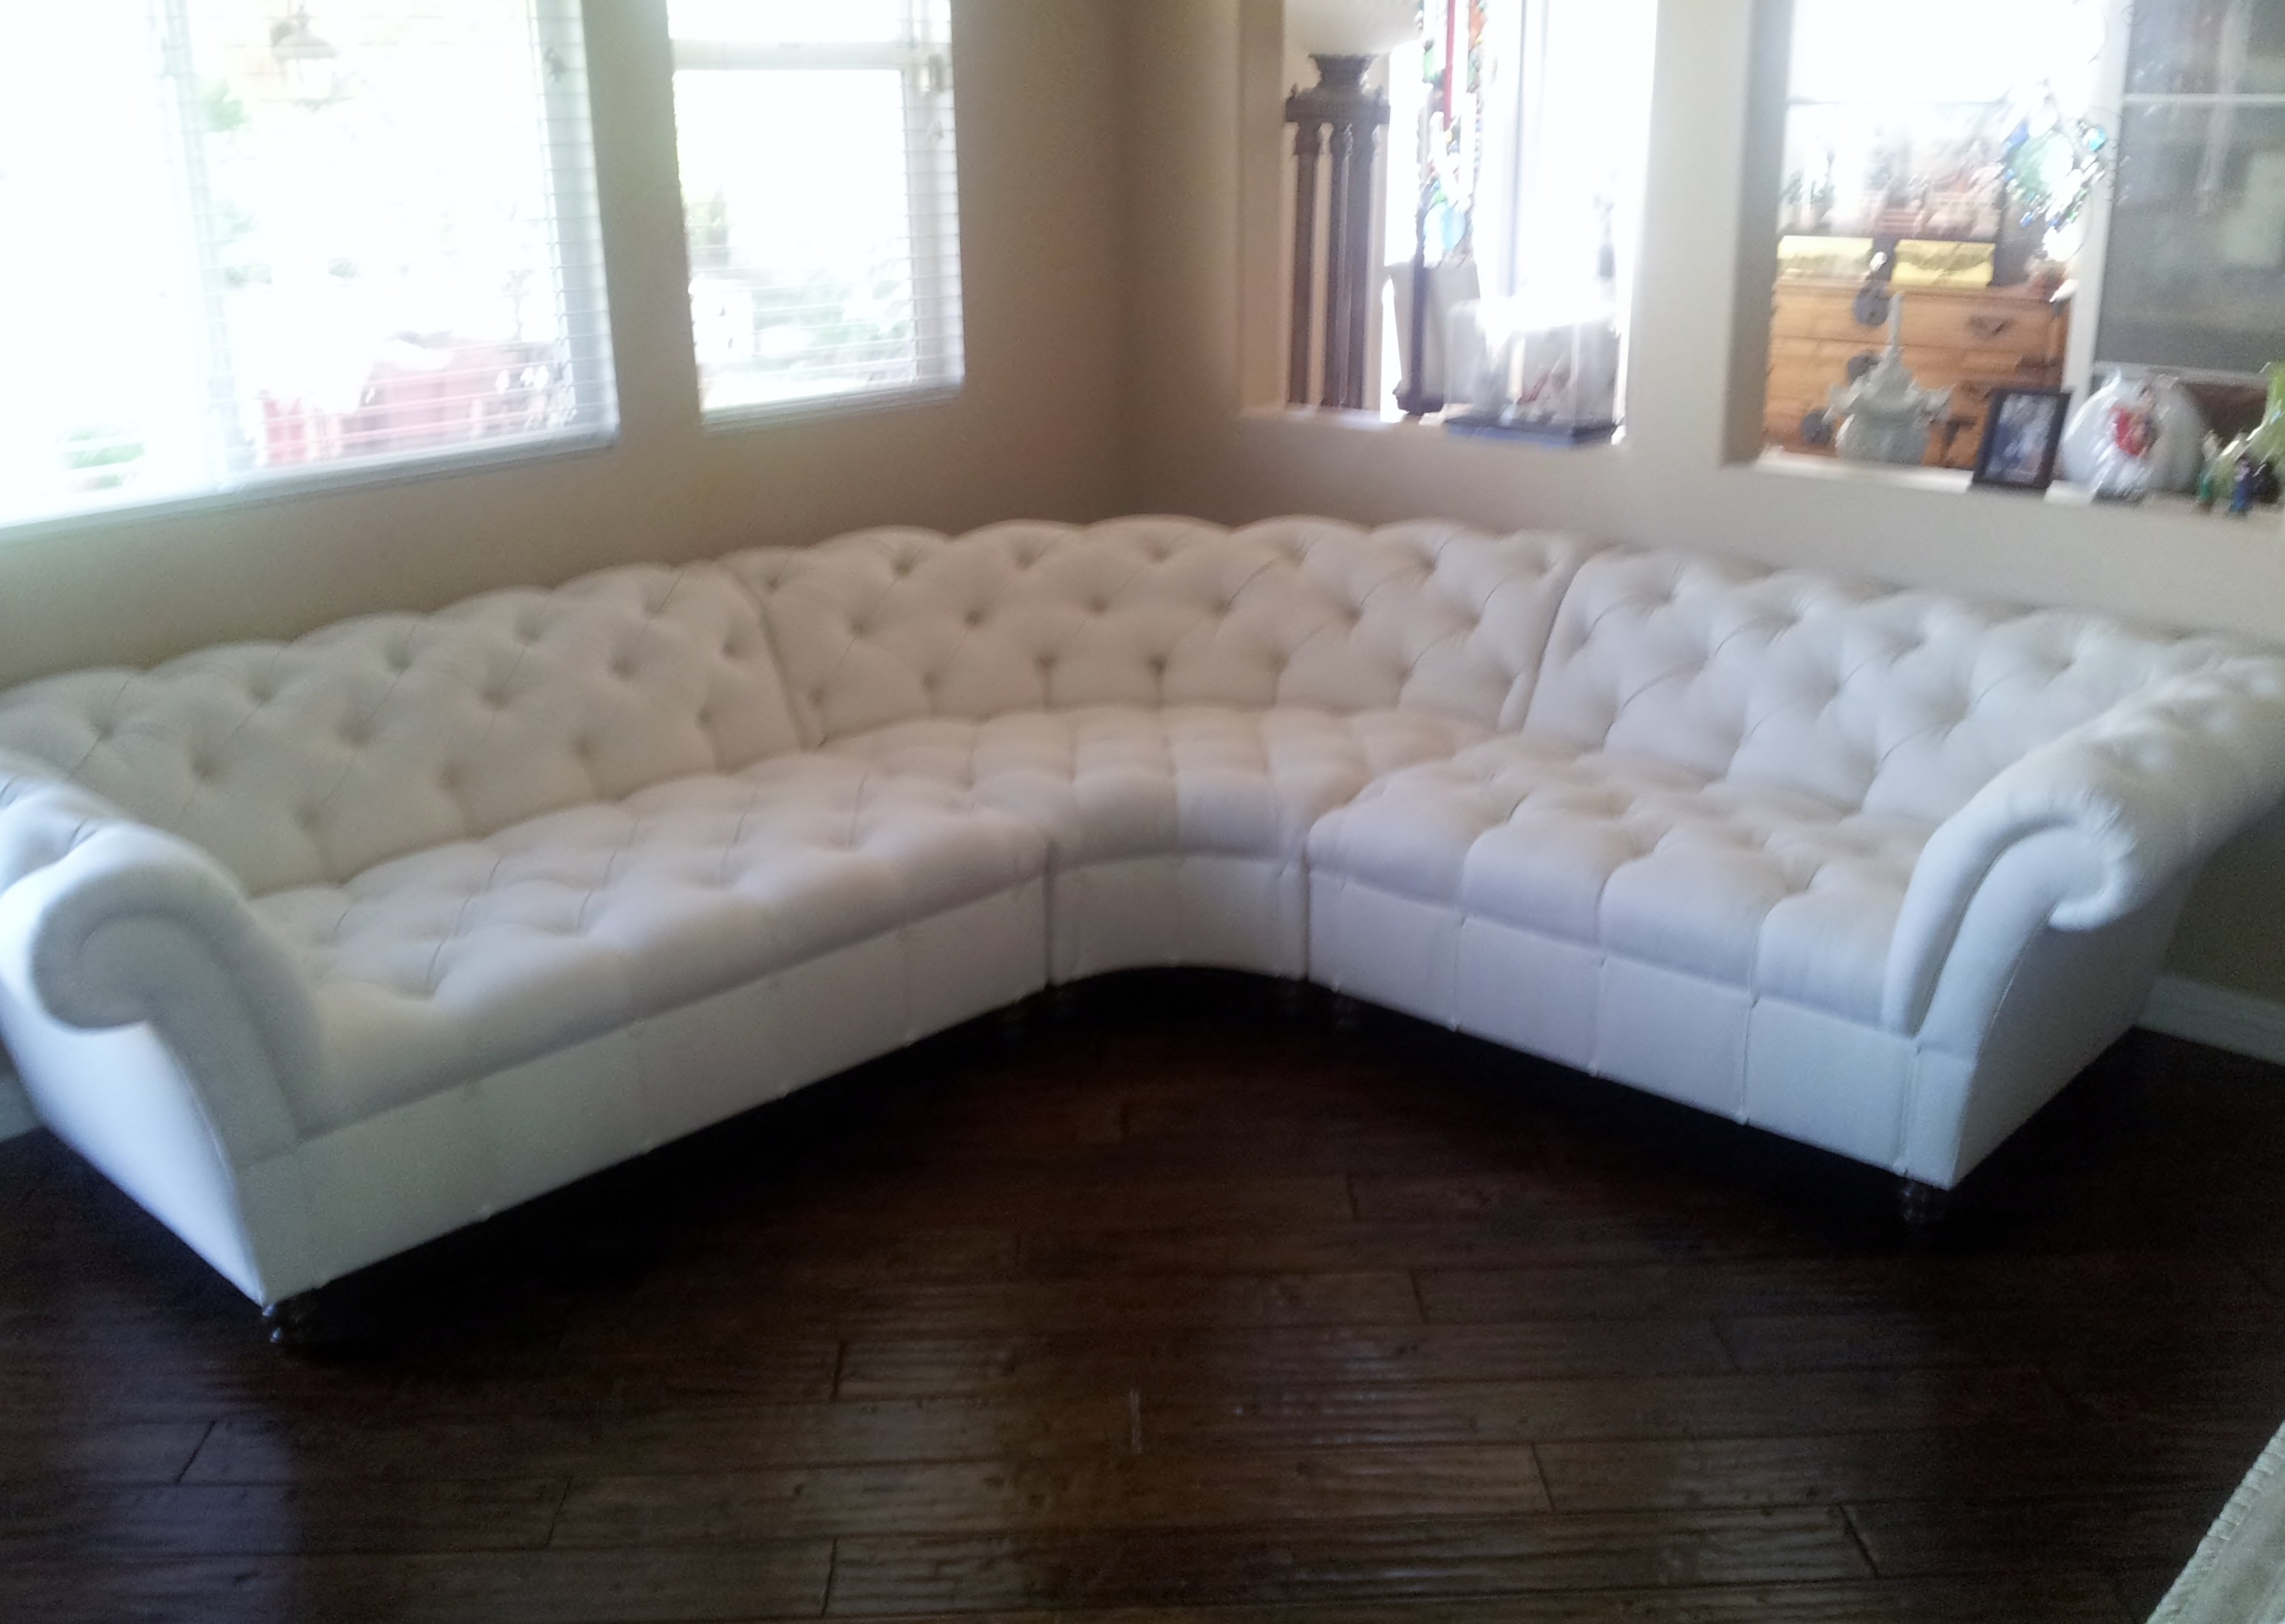 Sofa Custom Leather Sofas Made Uk Furniture San Diego North Carolina Pertaining To Made In North Carolina Sectional Sofas (Image 8 of 10)